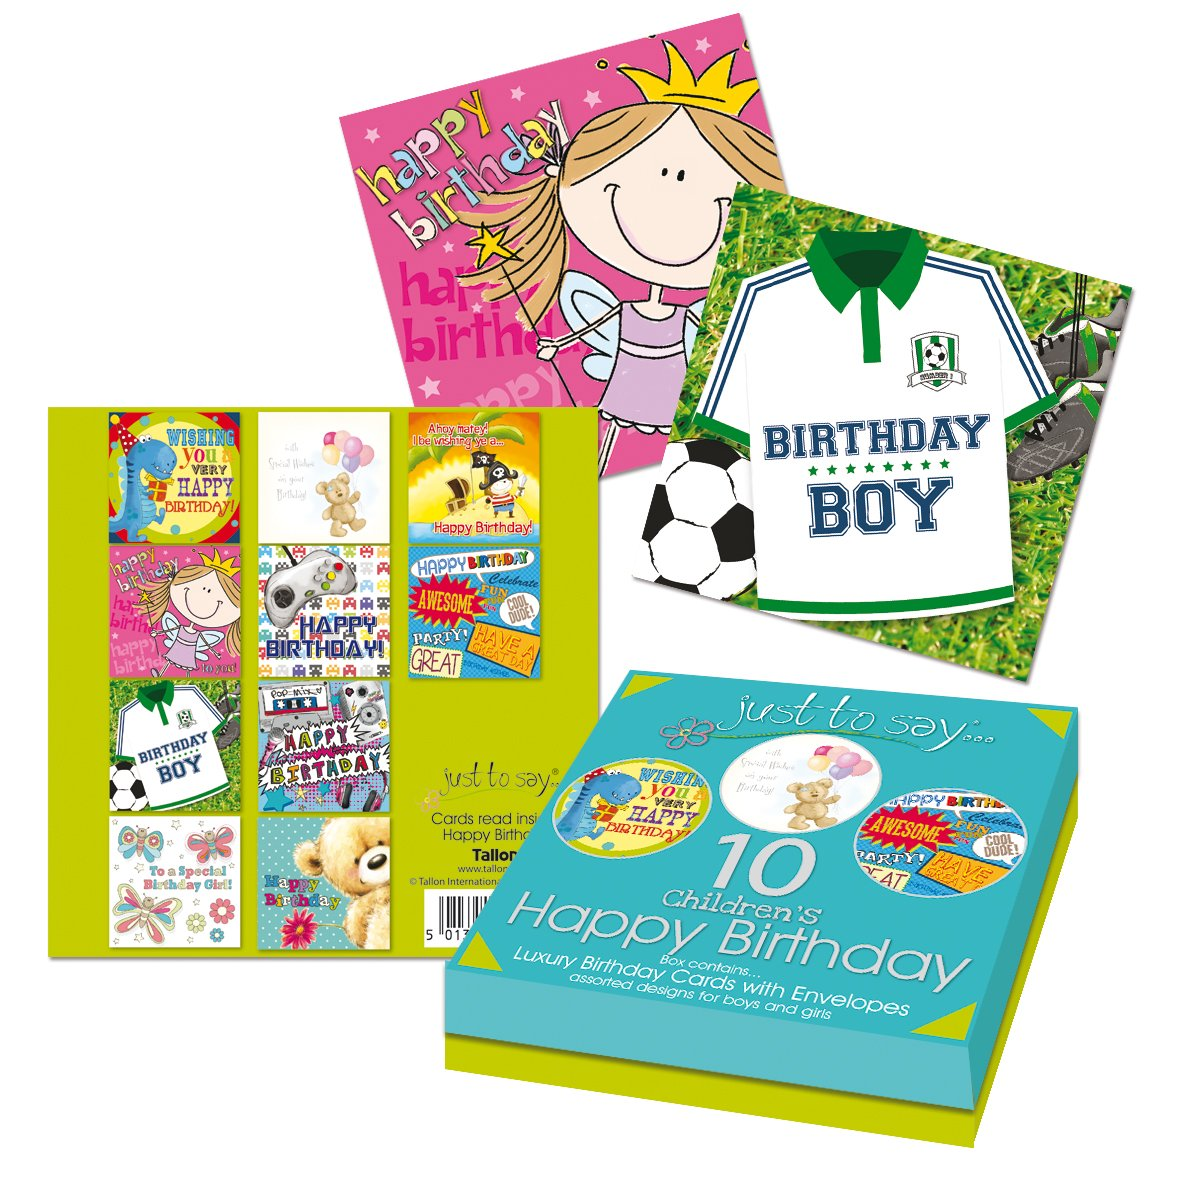 Tallon Just To Say Kids Birthday Card Box of 10 Amazoncouk – Children Birthday Cards